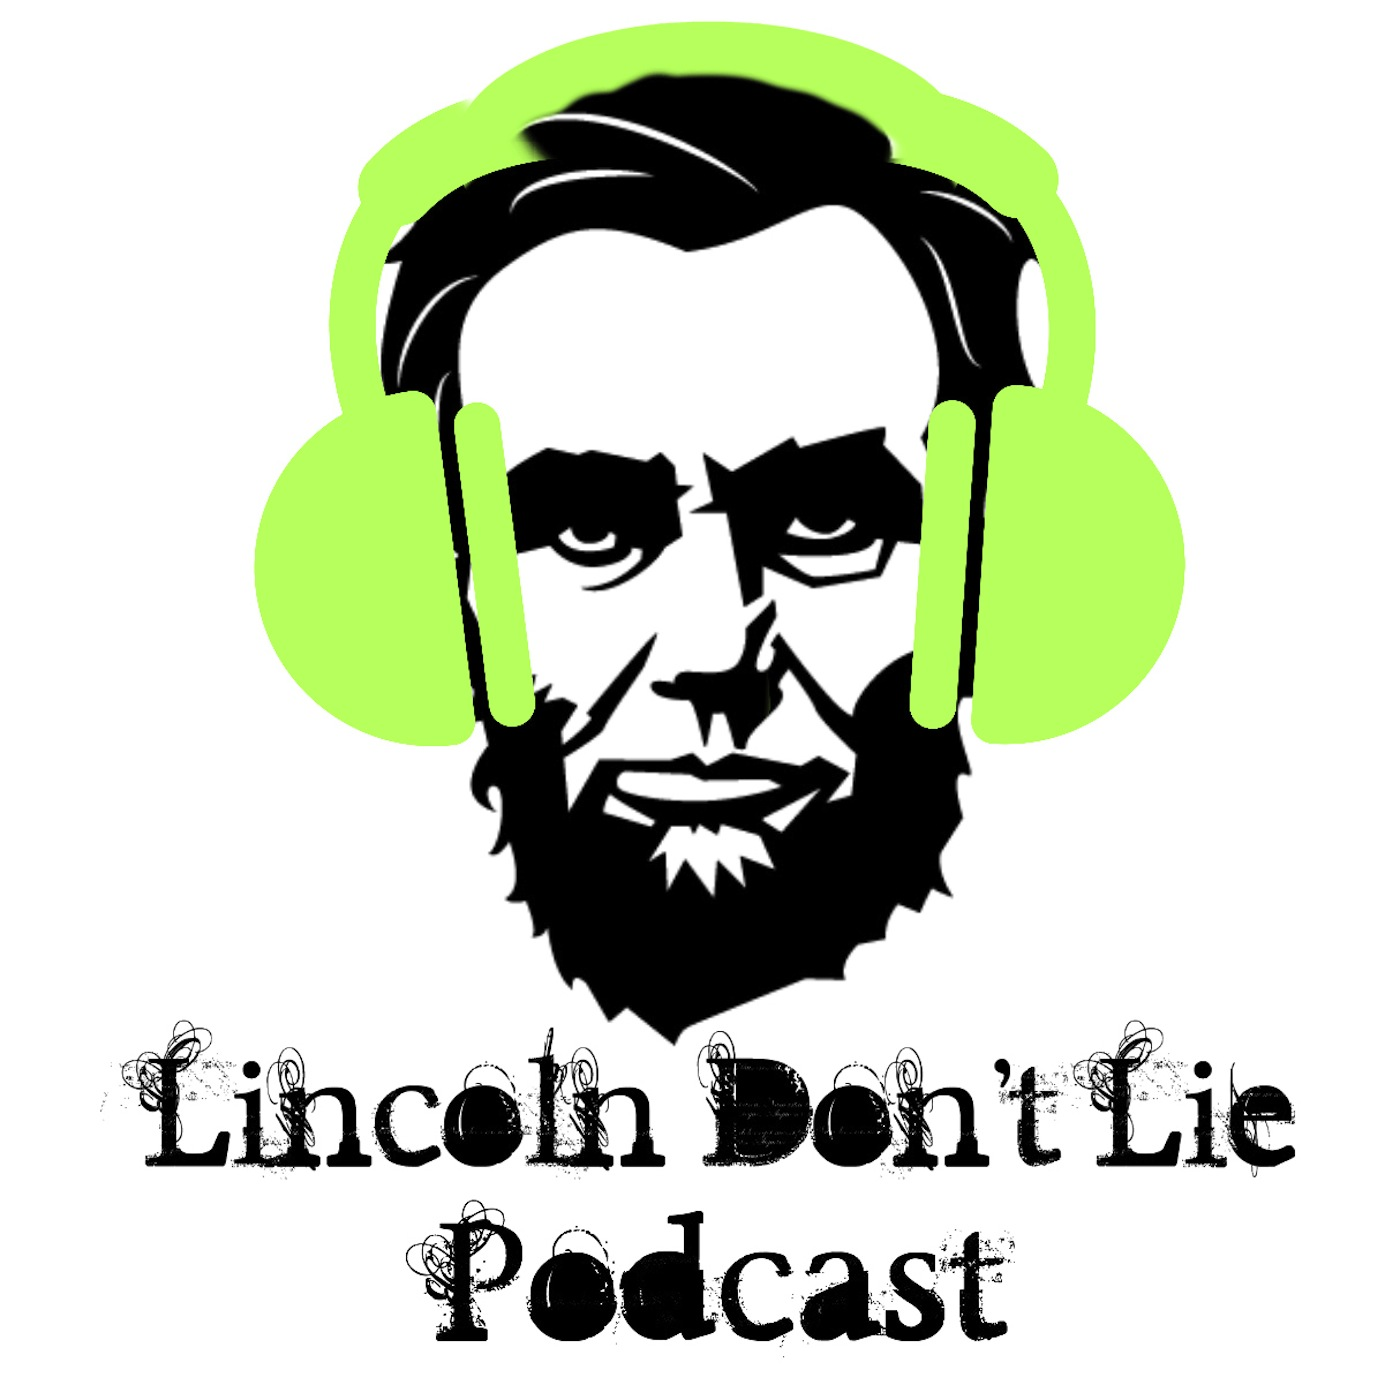 Lincoln Don't Lie Band Podcast